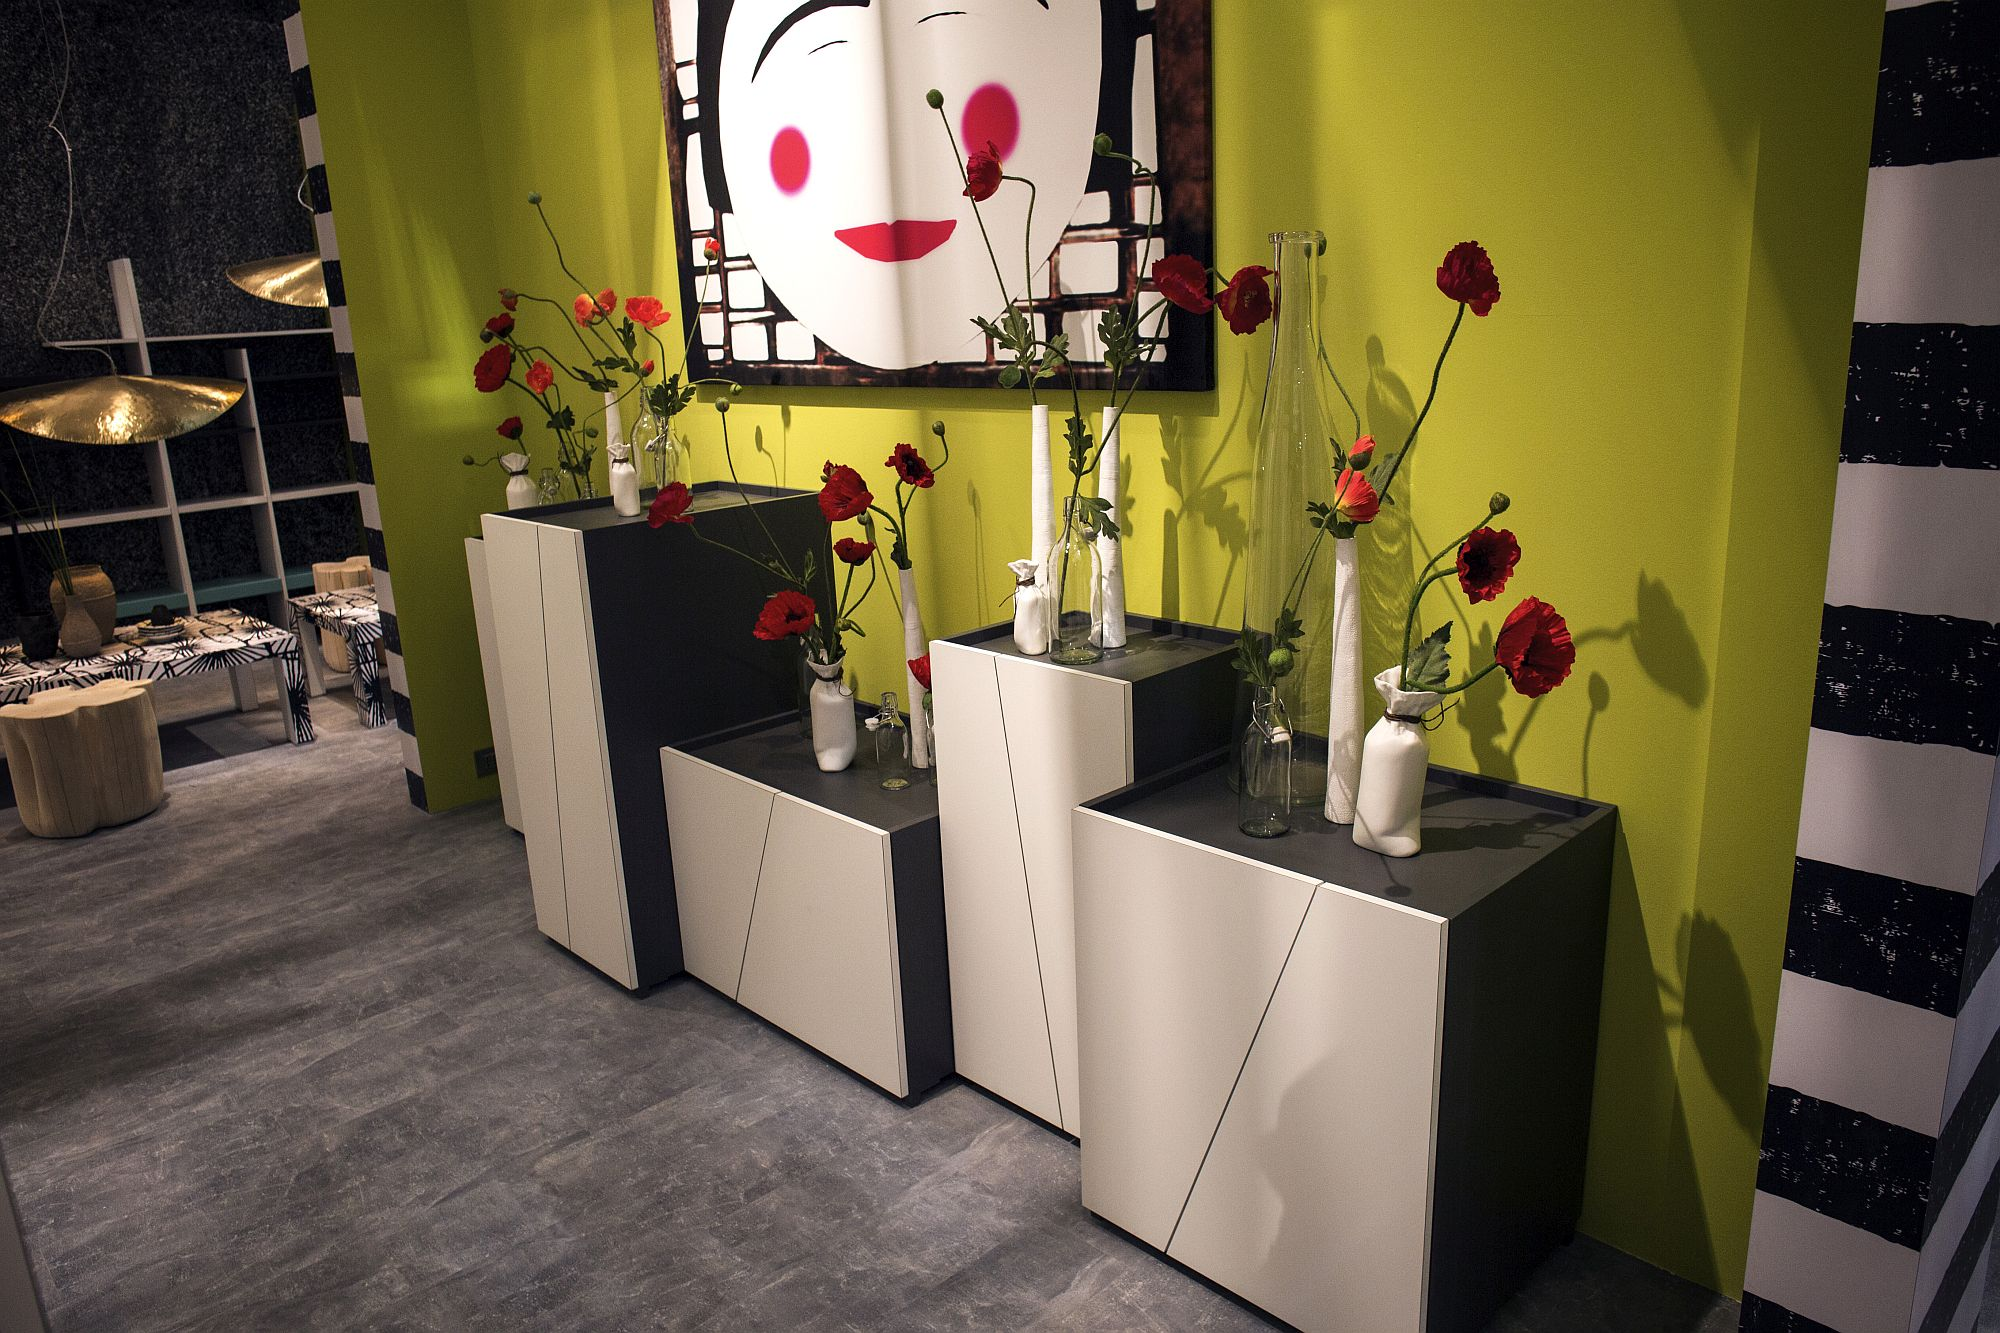 Slim-white-vases-coupled-with-fabulous-flowers-in-red